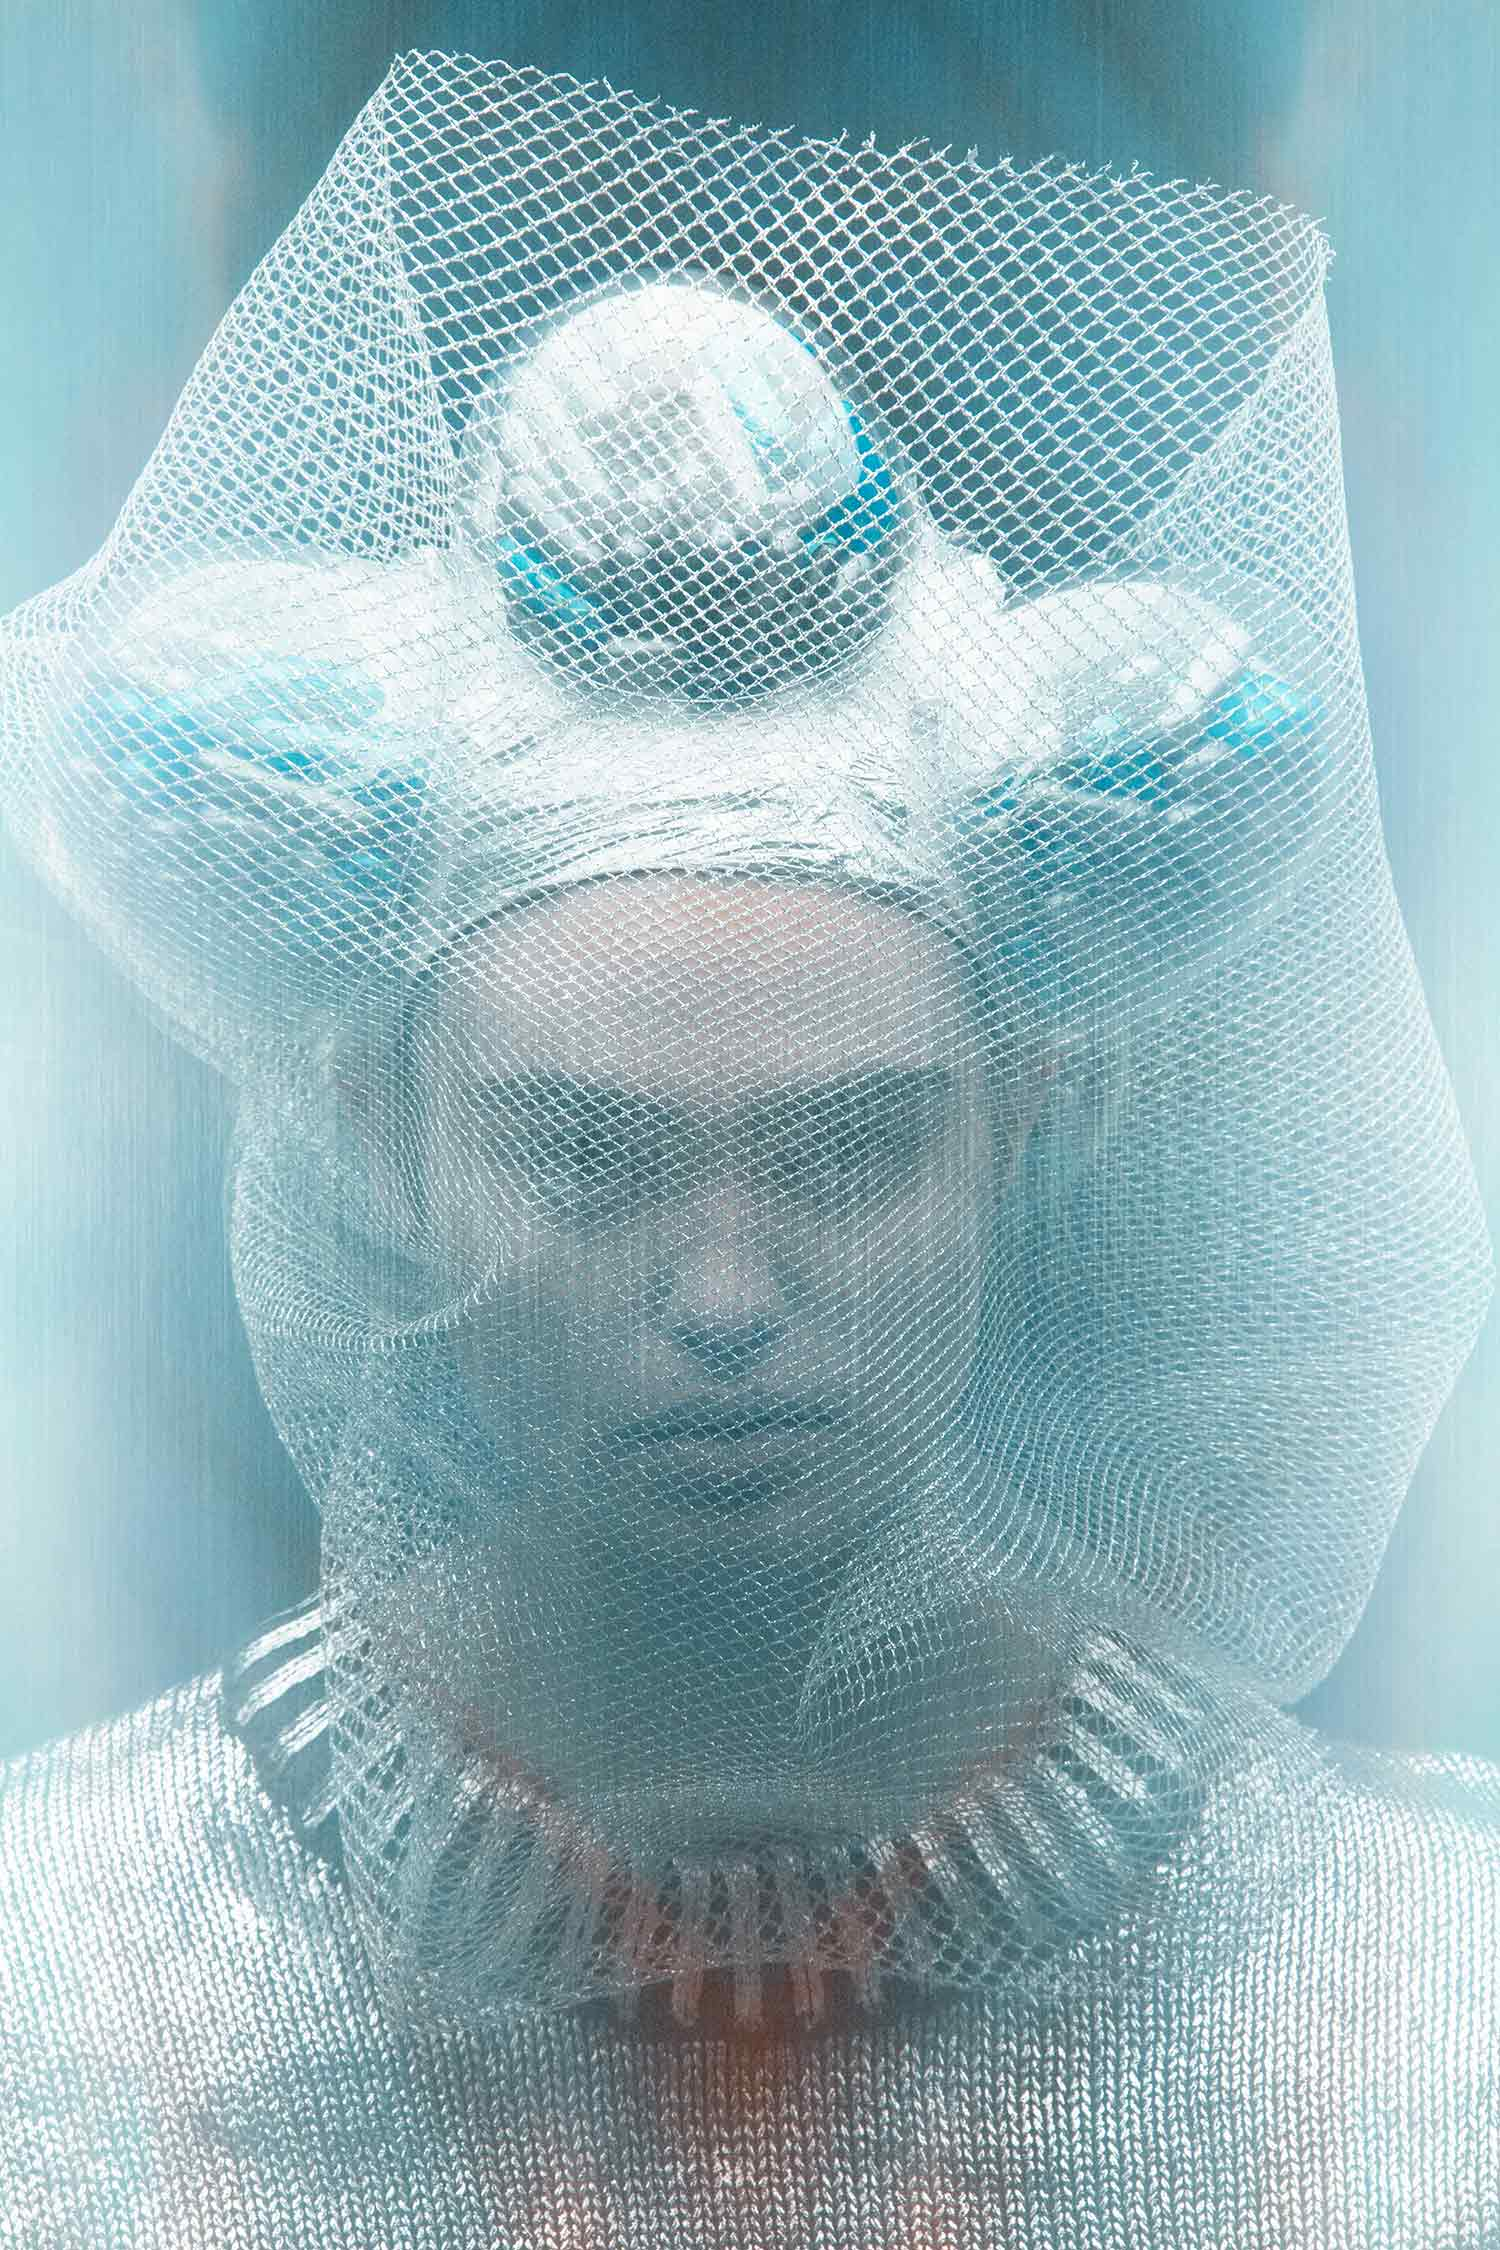 TOMAAS, Modern Addictions - headdress